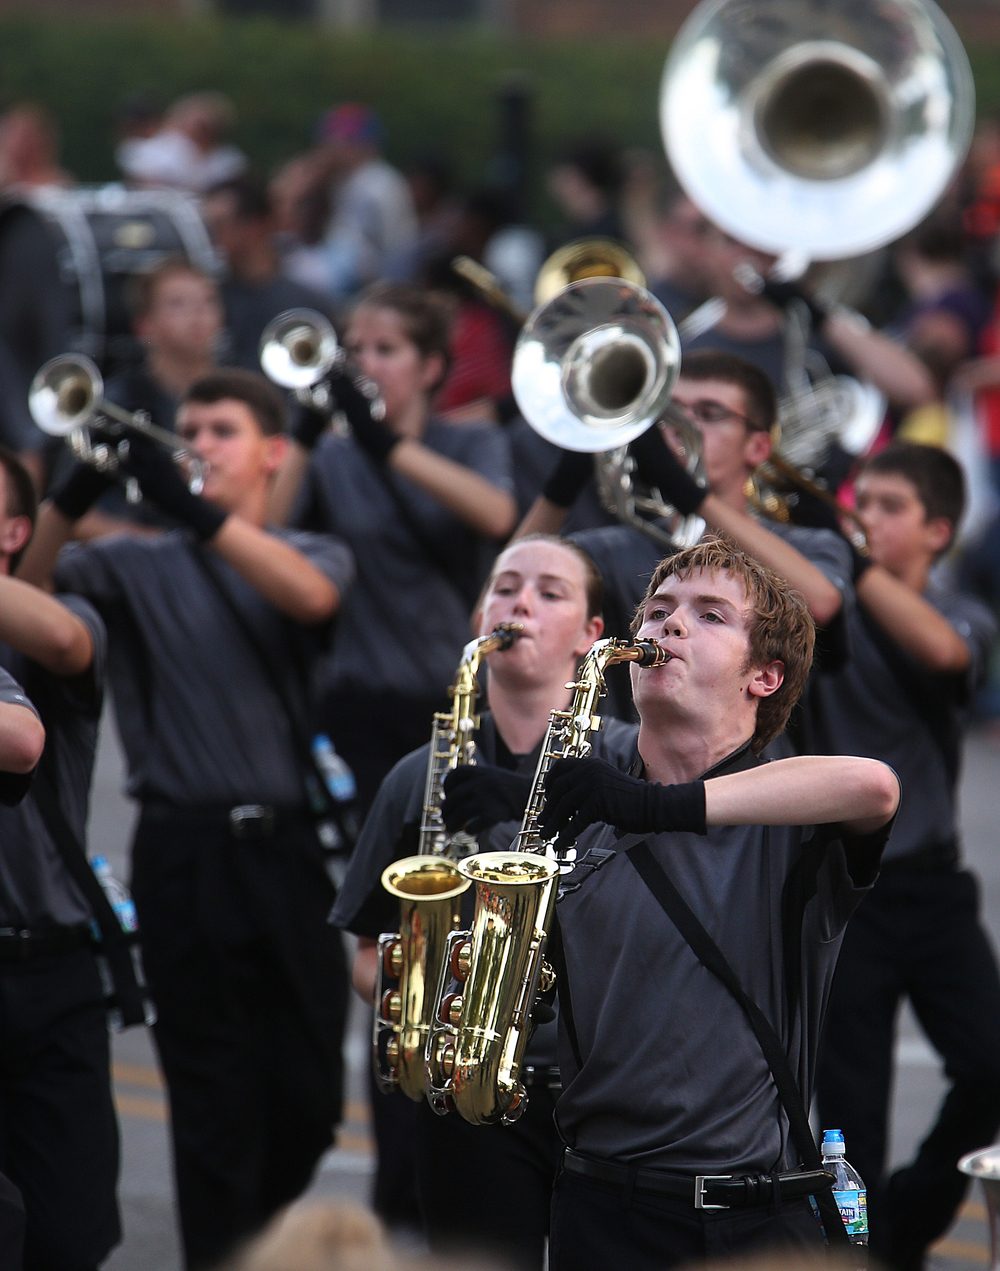 Musicians from Normal West High School Marching Band perform along the parade route. David Spencer/The State Journal-Register